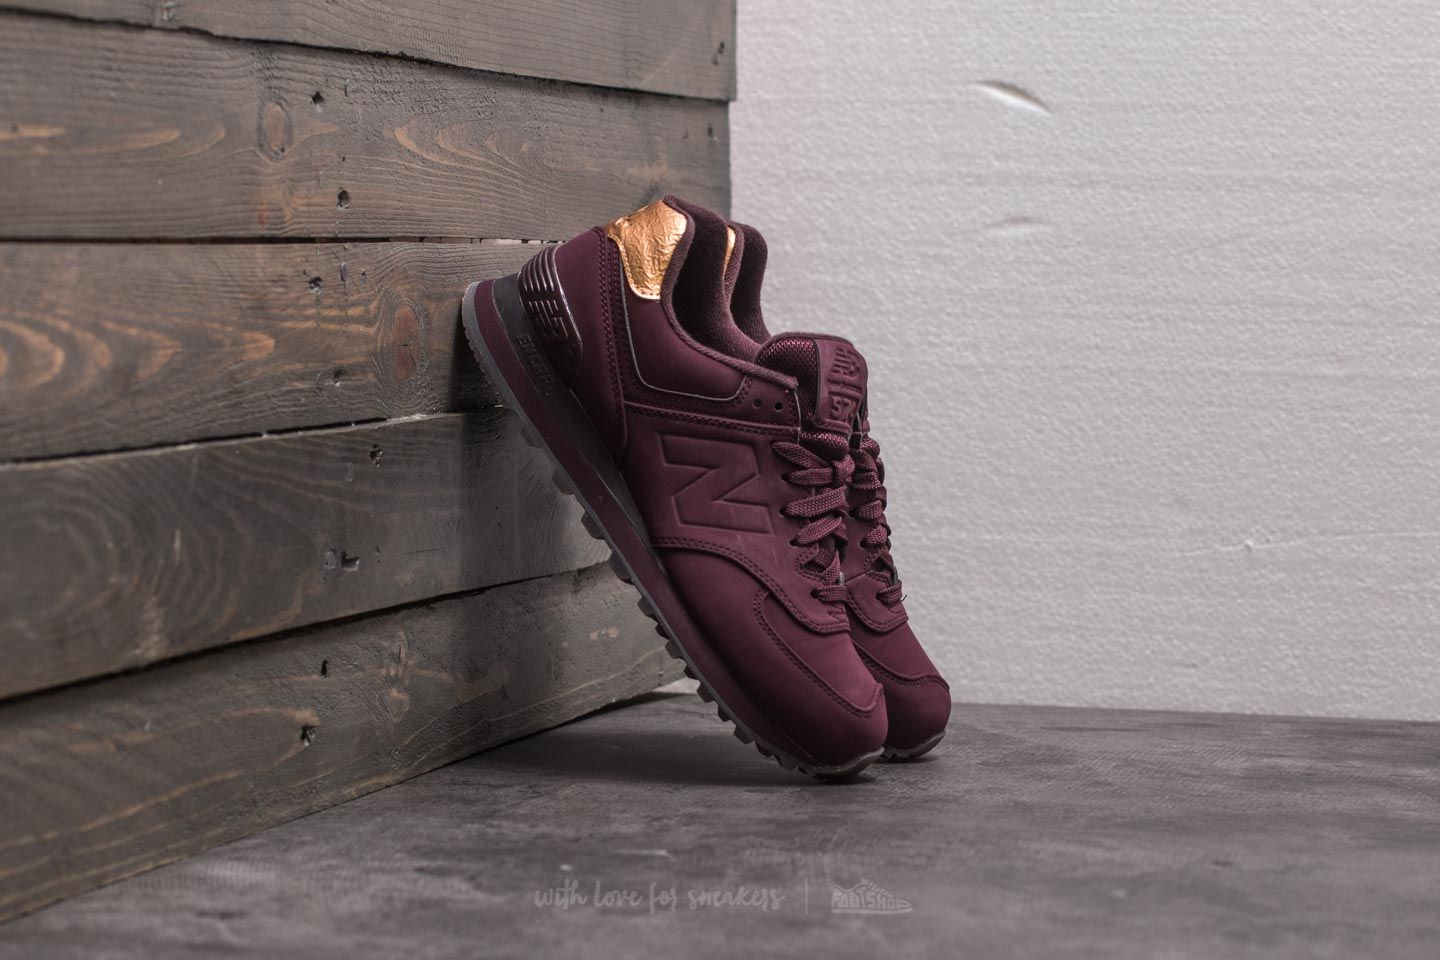 69edd78fdd064 New Balance 574 Burgundy/ Gold | Footshop